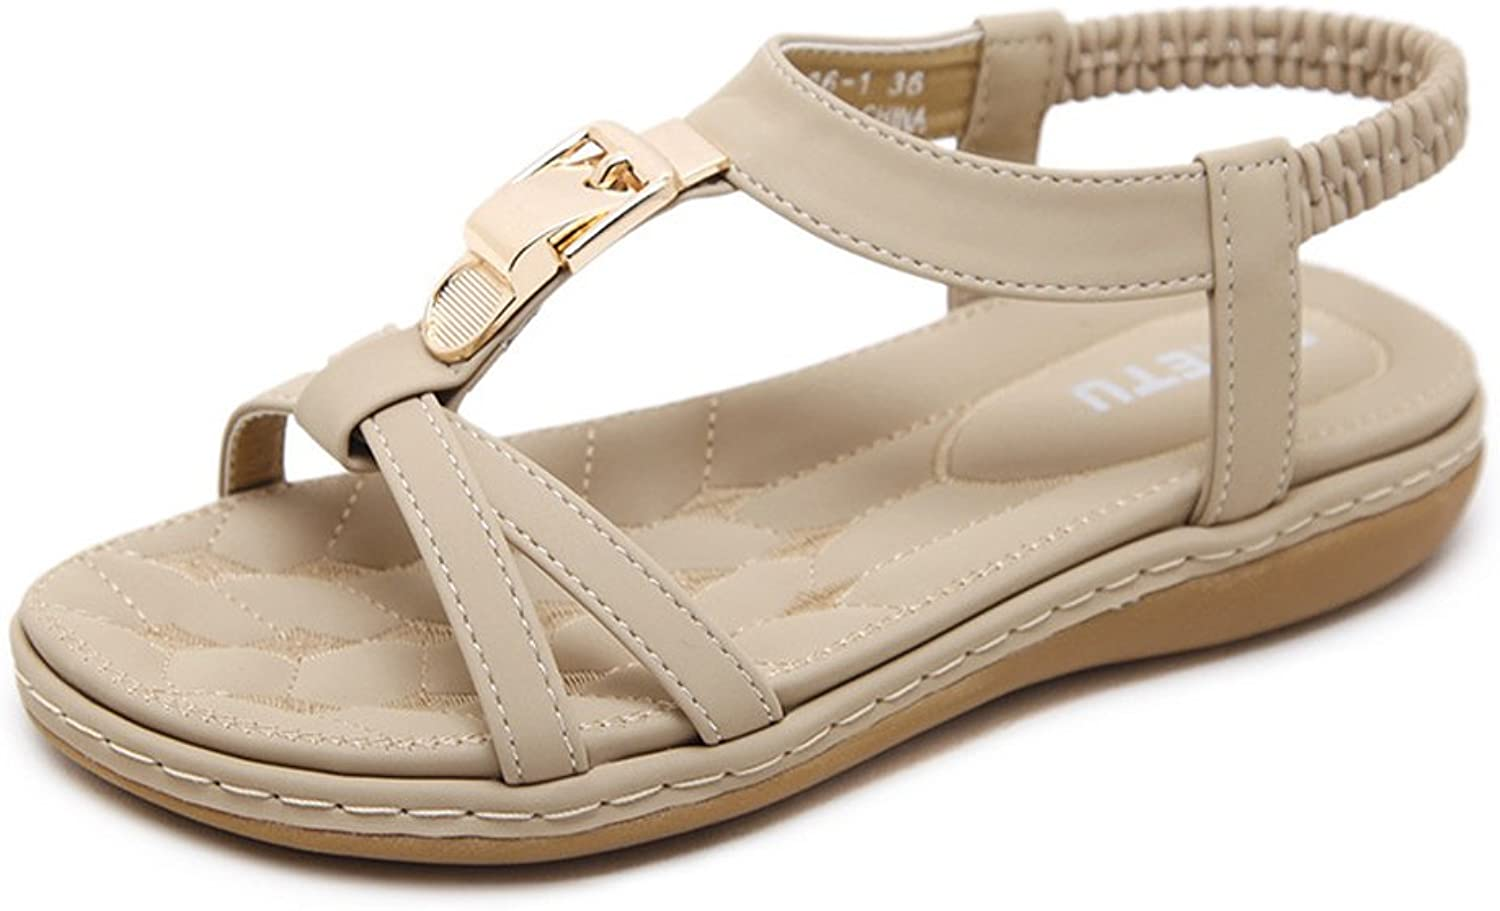 Ladies Sandals Buckle Flip Flop Summer Low Flat Heel Beach shoes